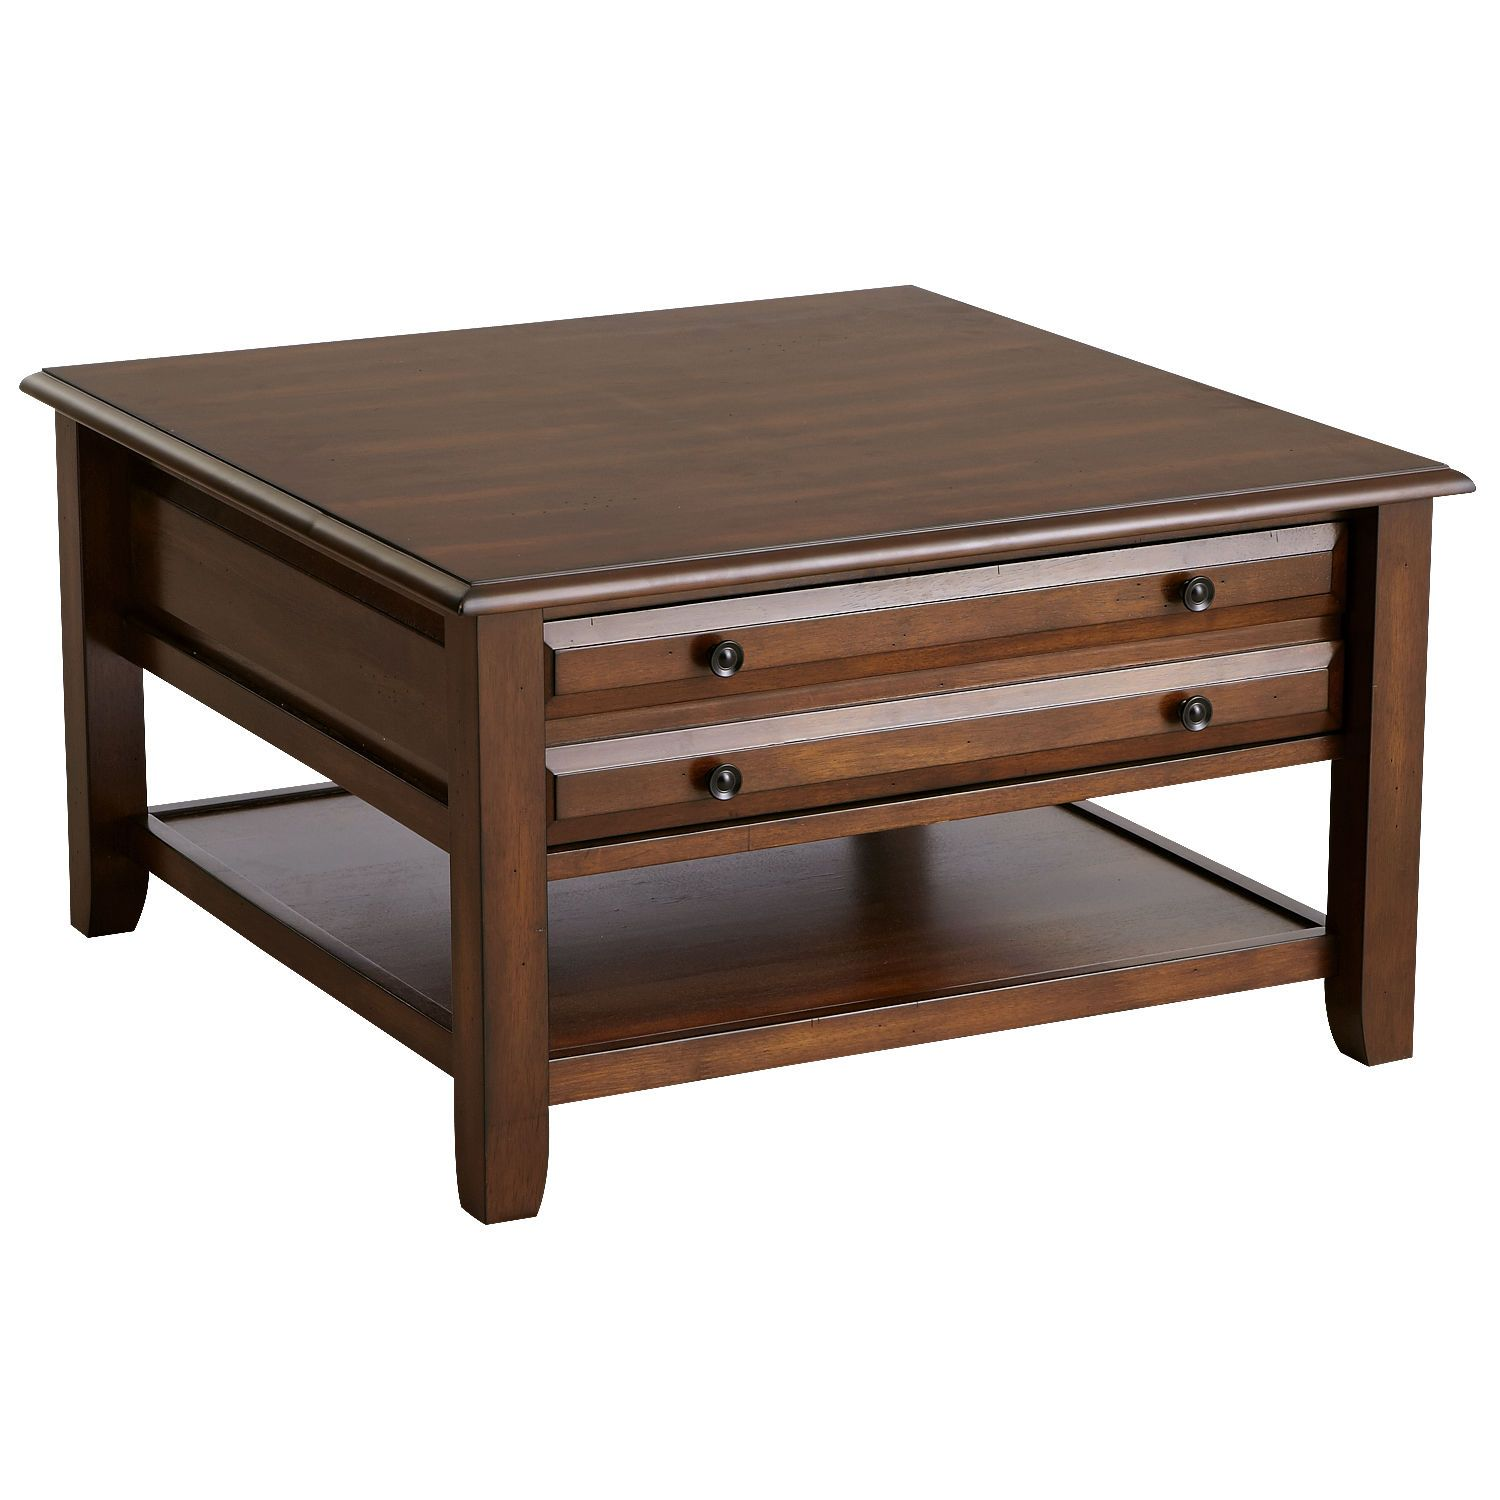 Anywhere Square Coffee Table Tuscan Brown Pier 1 Imports Coffee Table Square Black Square Coffee Table Brown Coffee Table